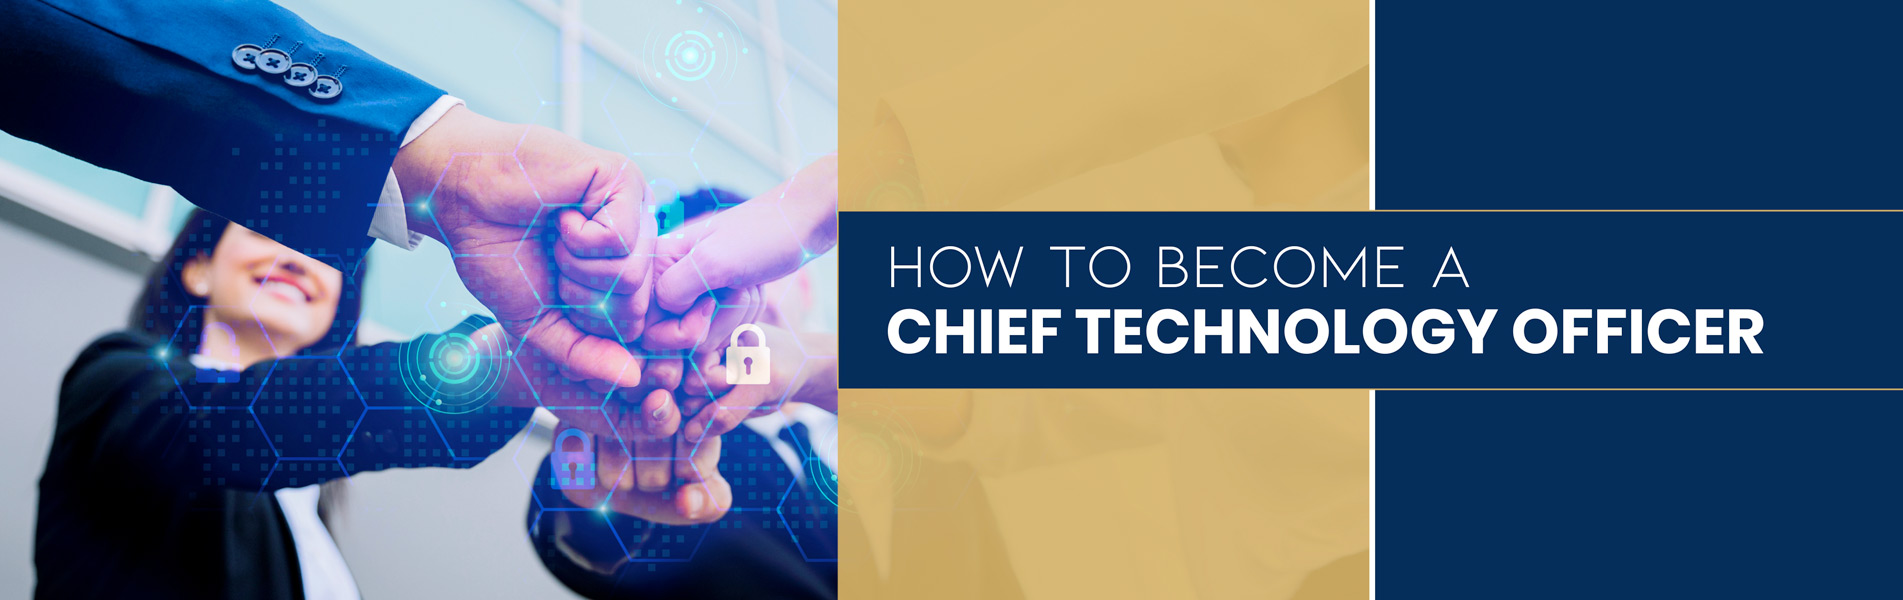 How to Become a Chief Technology Officer